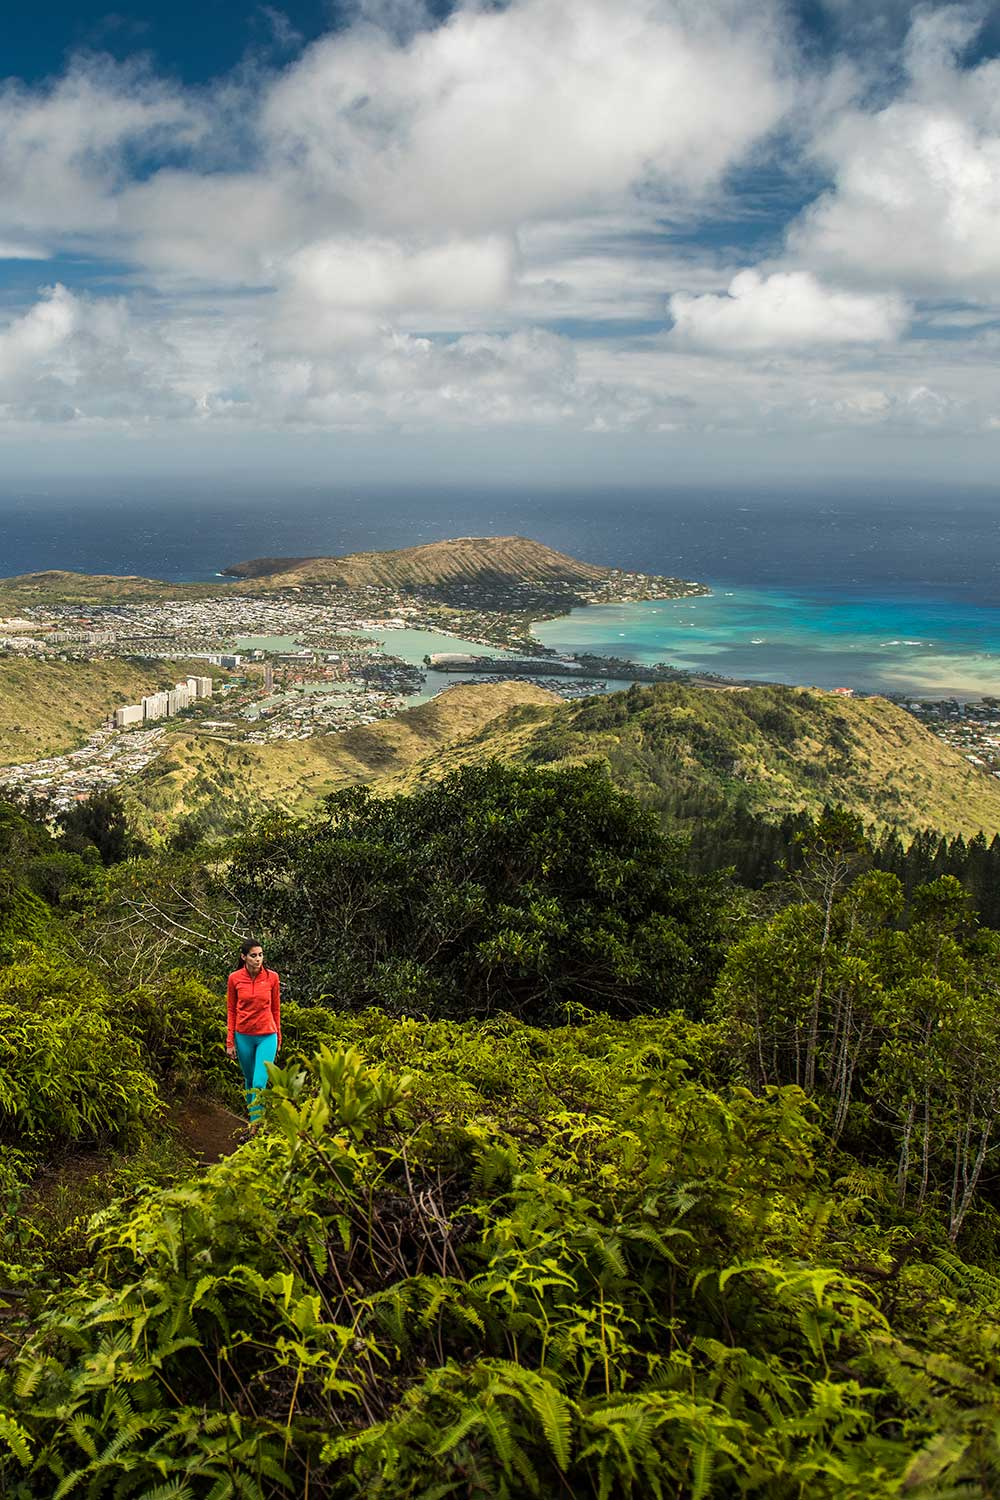 View looking down from Kuli'ou'ou Ridge Trail with woman hiker wearing pink and blue in foreground